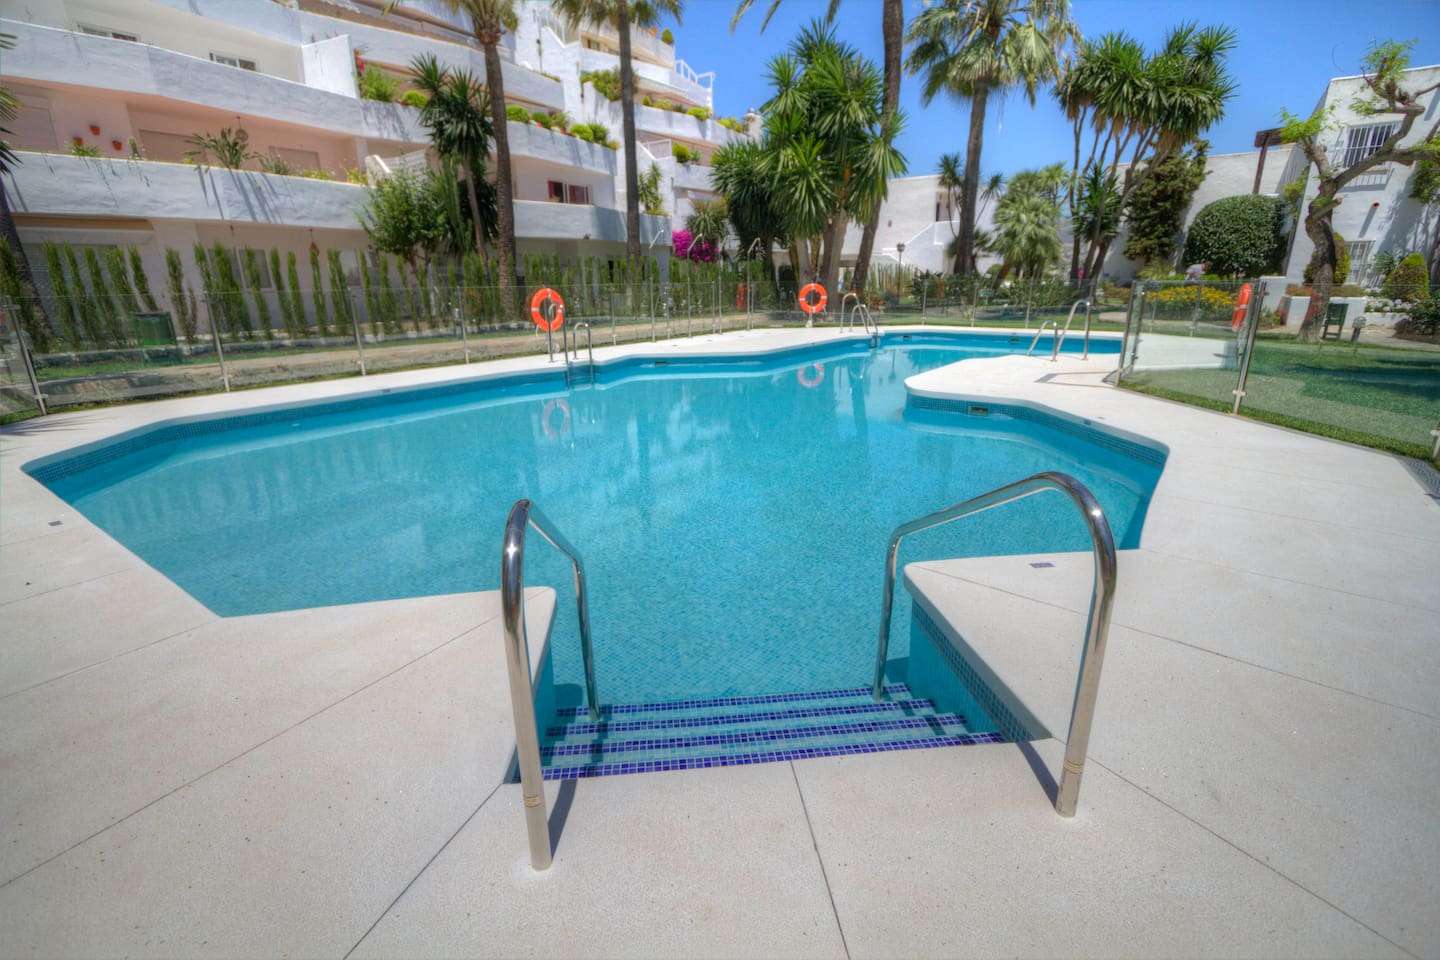 Nice swimming pool in tropical gardens, 2 bedroom apartment for rent Marbella Costa del Sol